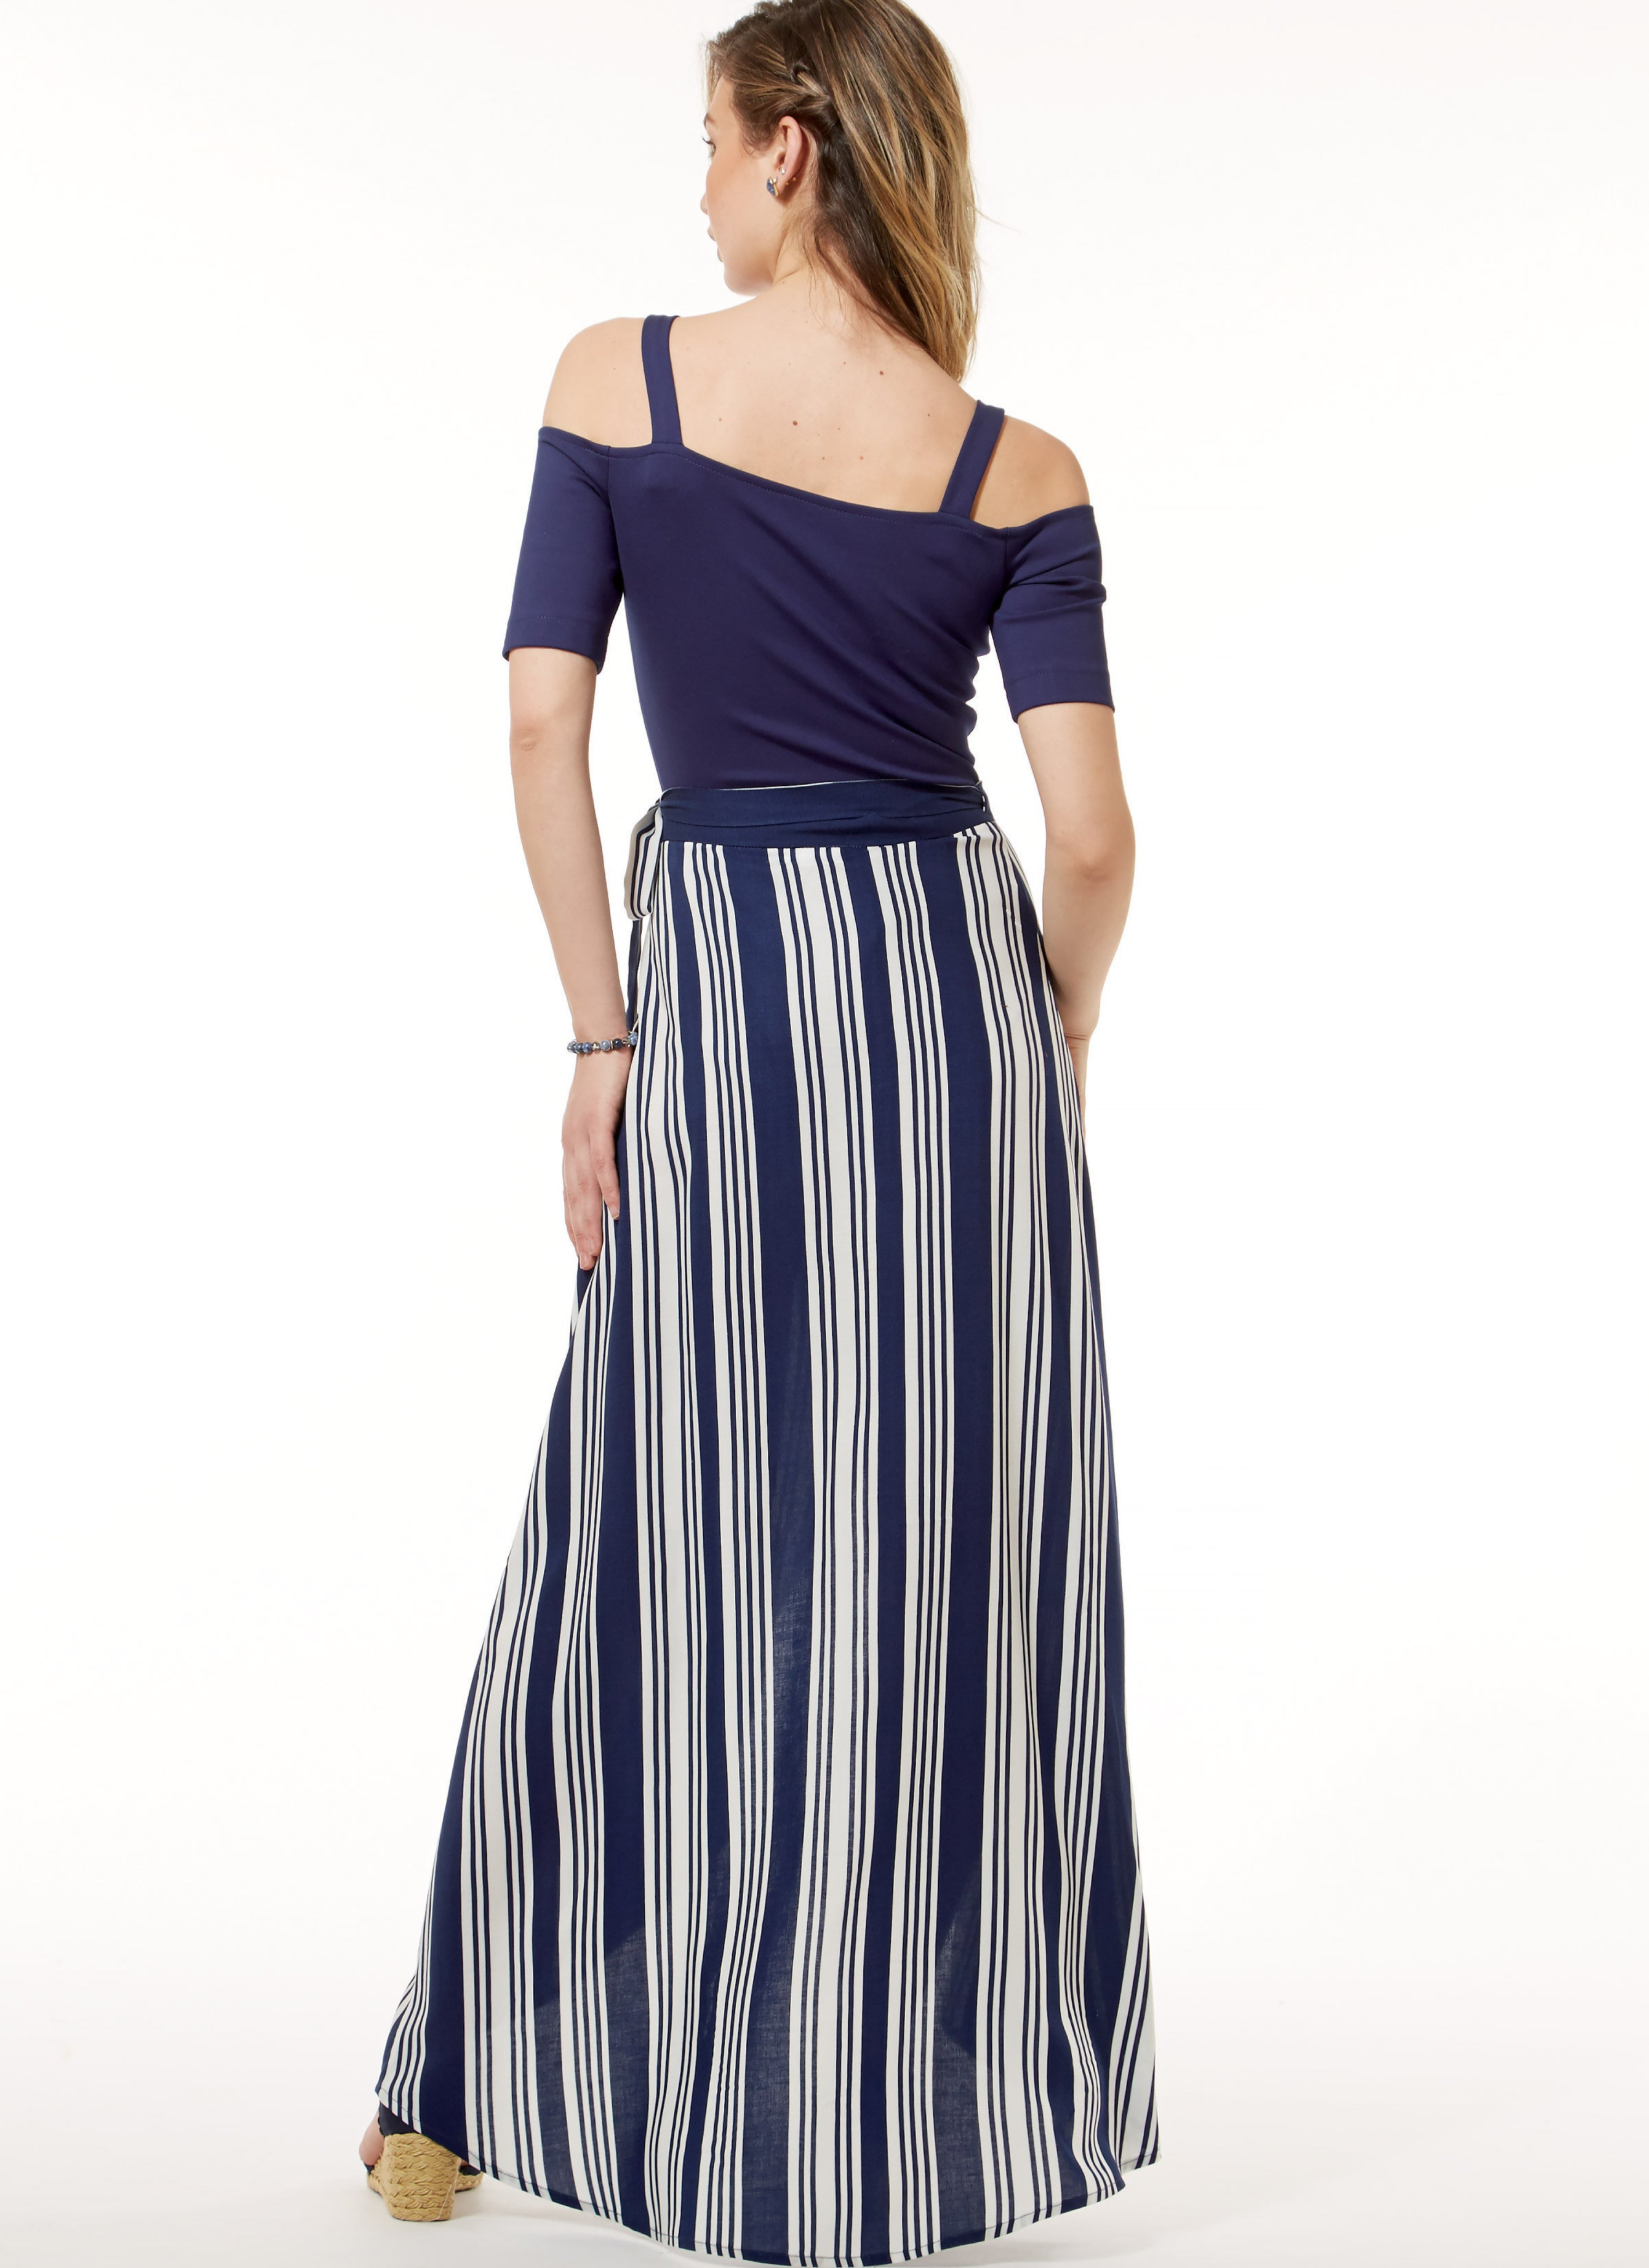 M7606 Off-the-Shoulder Bodysuits and Wrap Skirts